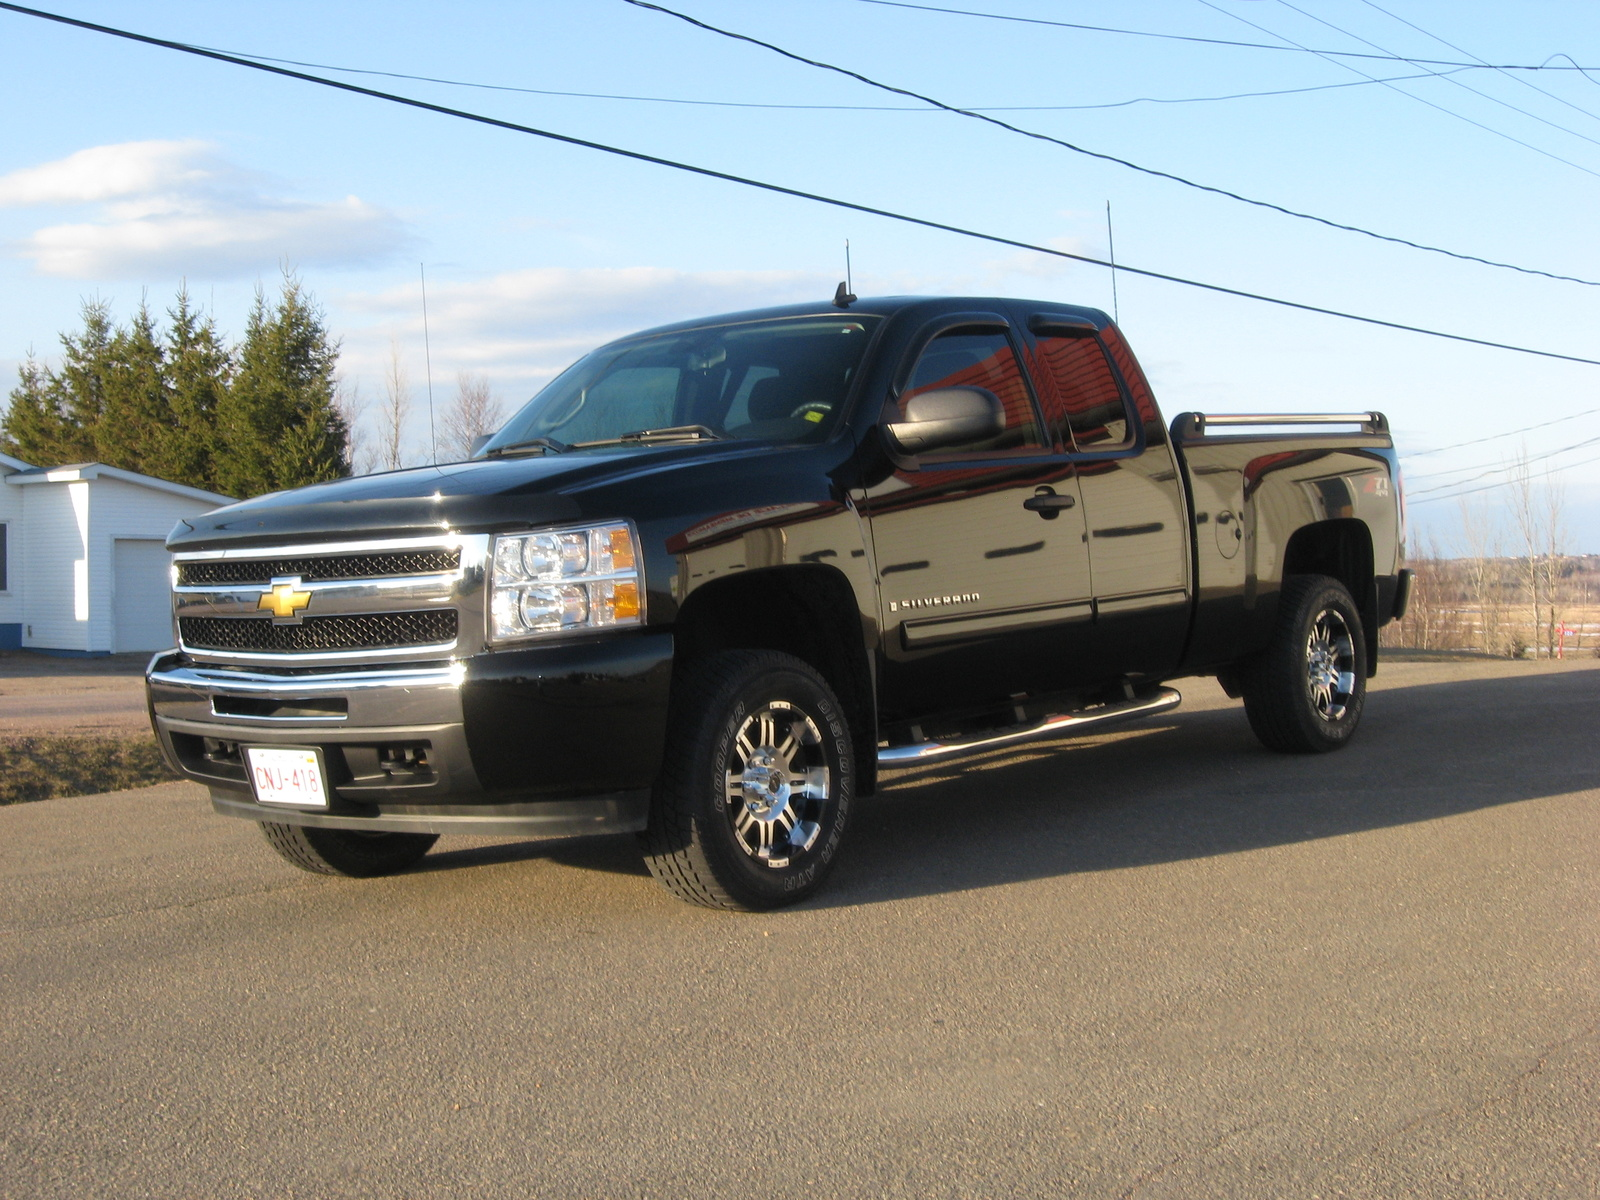 2007 2013 chevy silverado 1500 4x4 4 inch suspension autos post. Black Bedroom Furniture Sets. Home Design Ideas